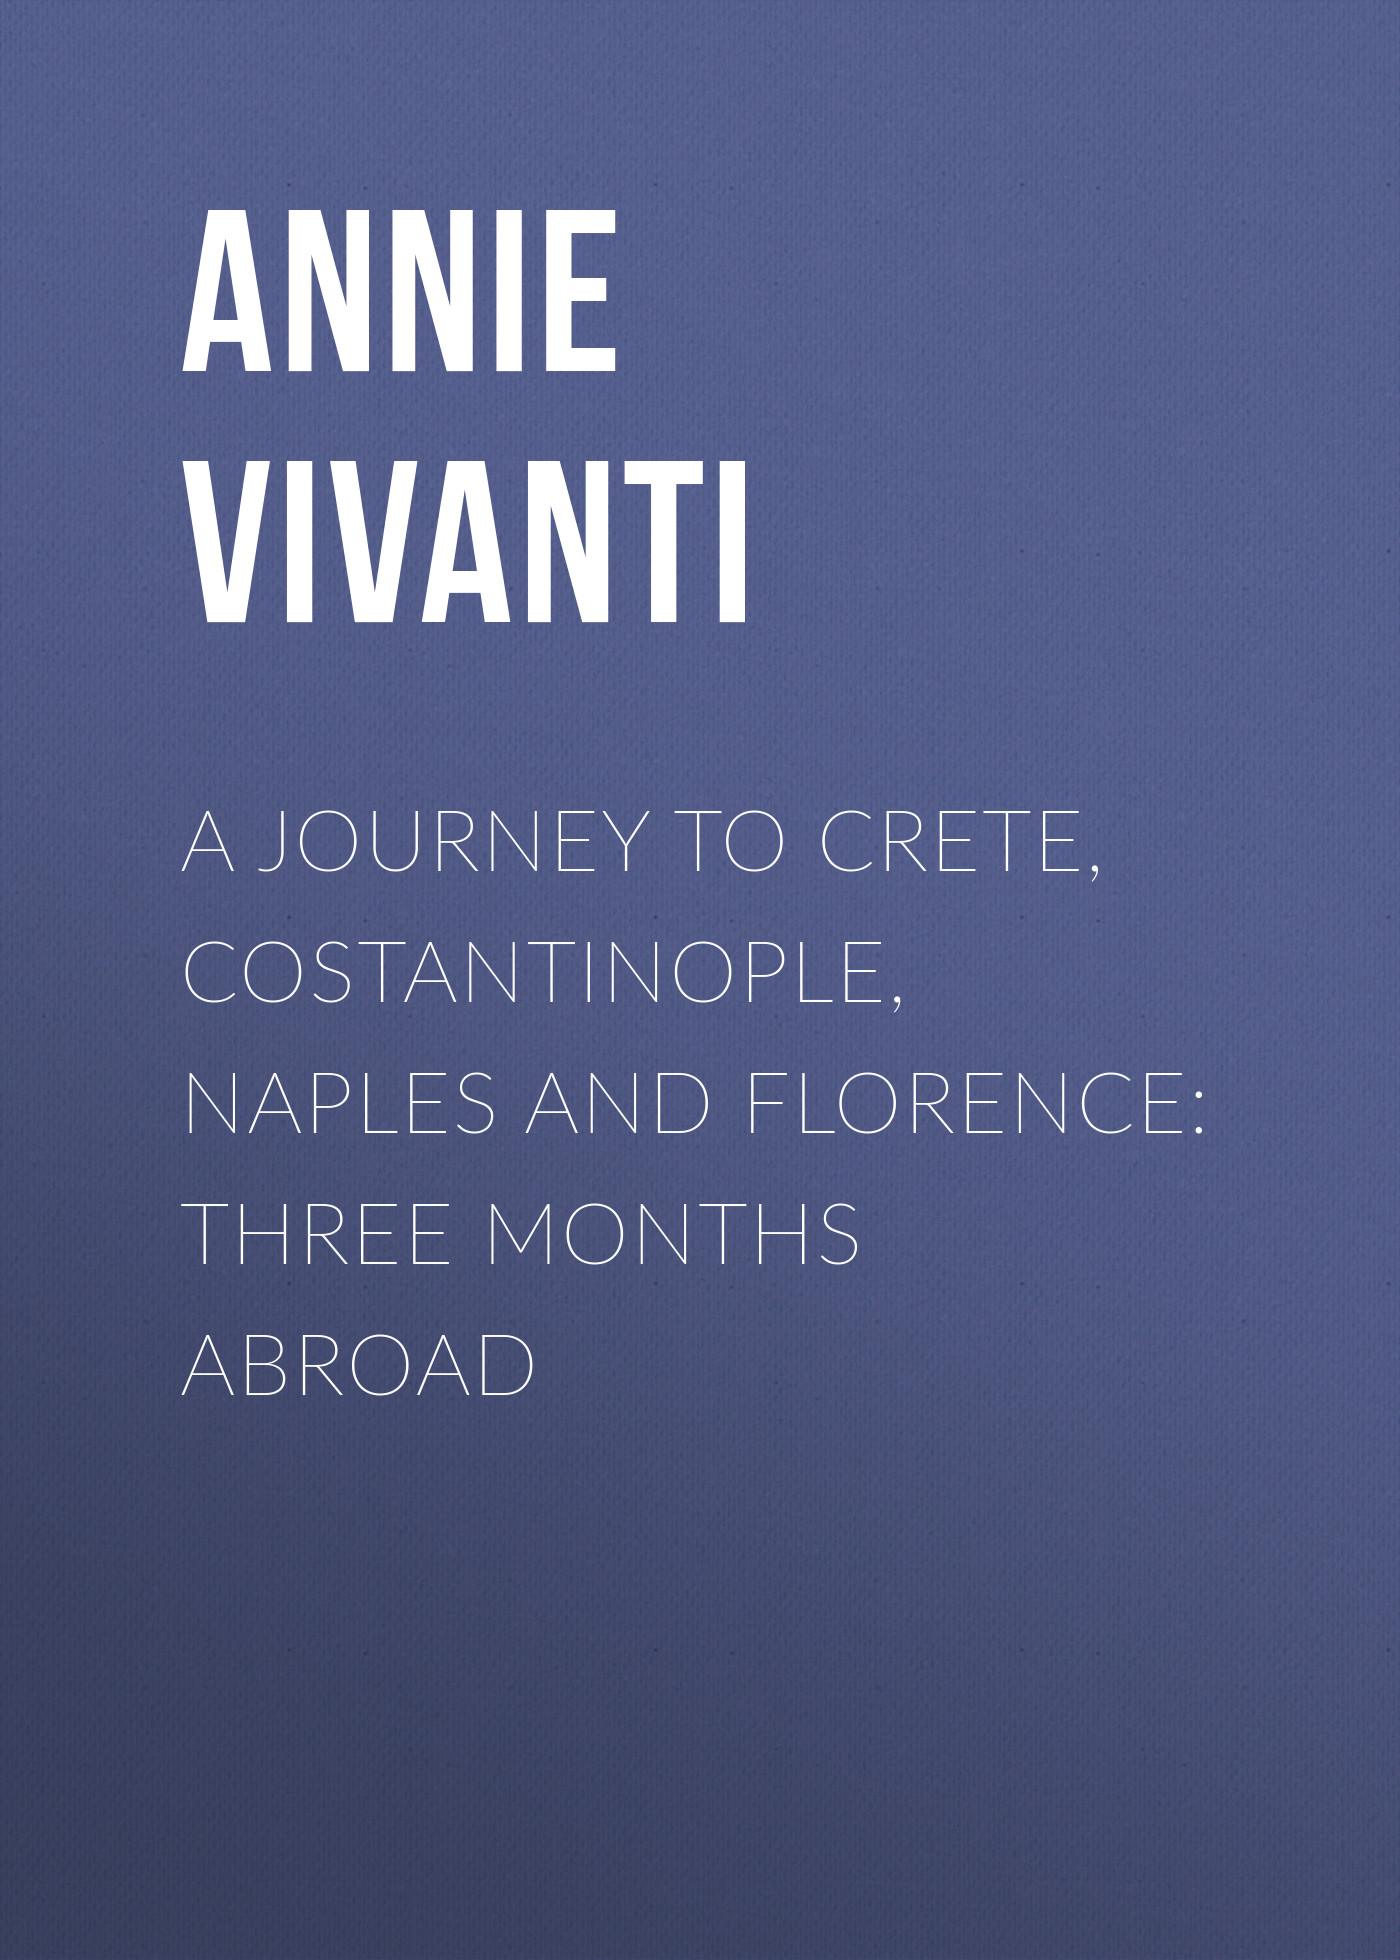 Annie Vivanti A Journey to Crete, Costantinople, Naples and Florence: Three Months Abroad brand new pn 98 0003 1458 7 3m microtouch touch screen well tested working three months warranty